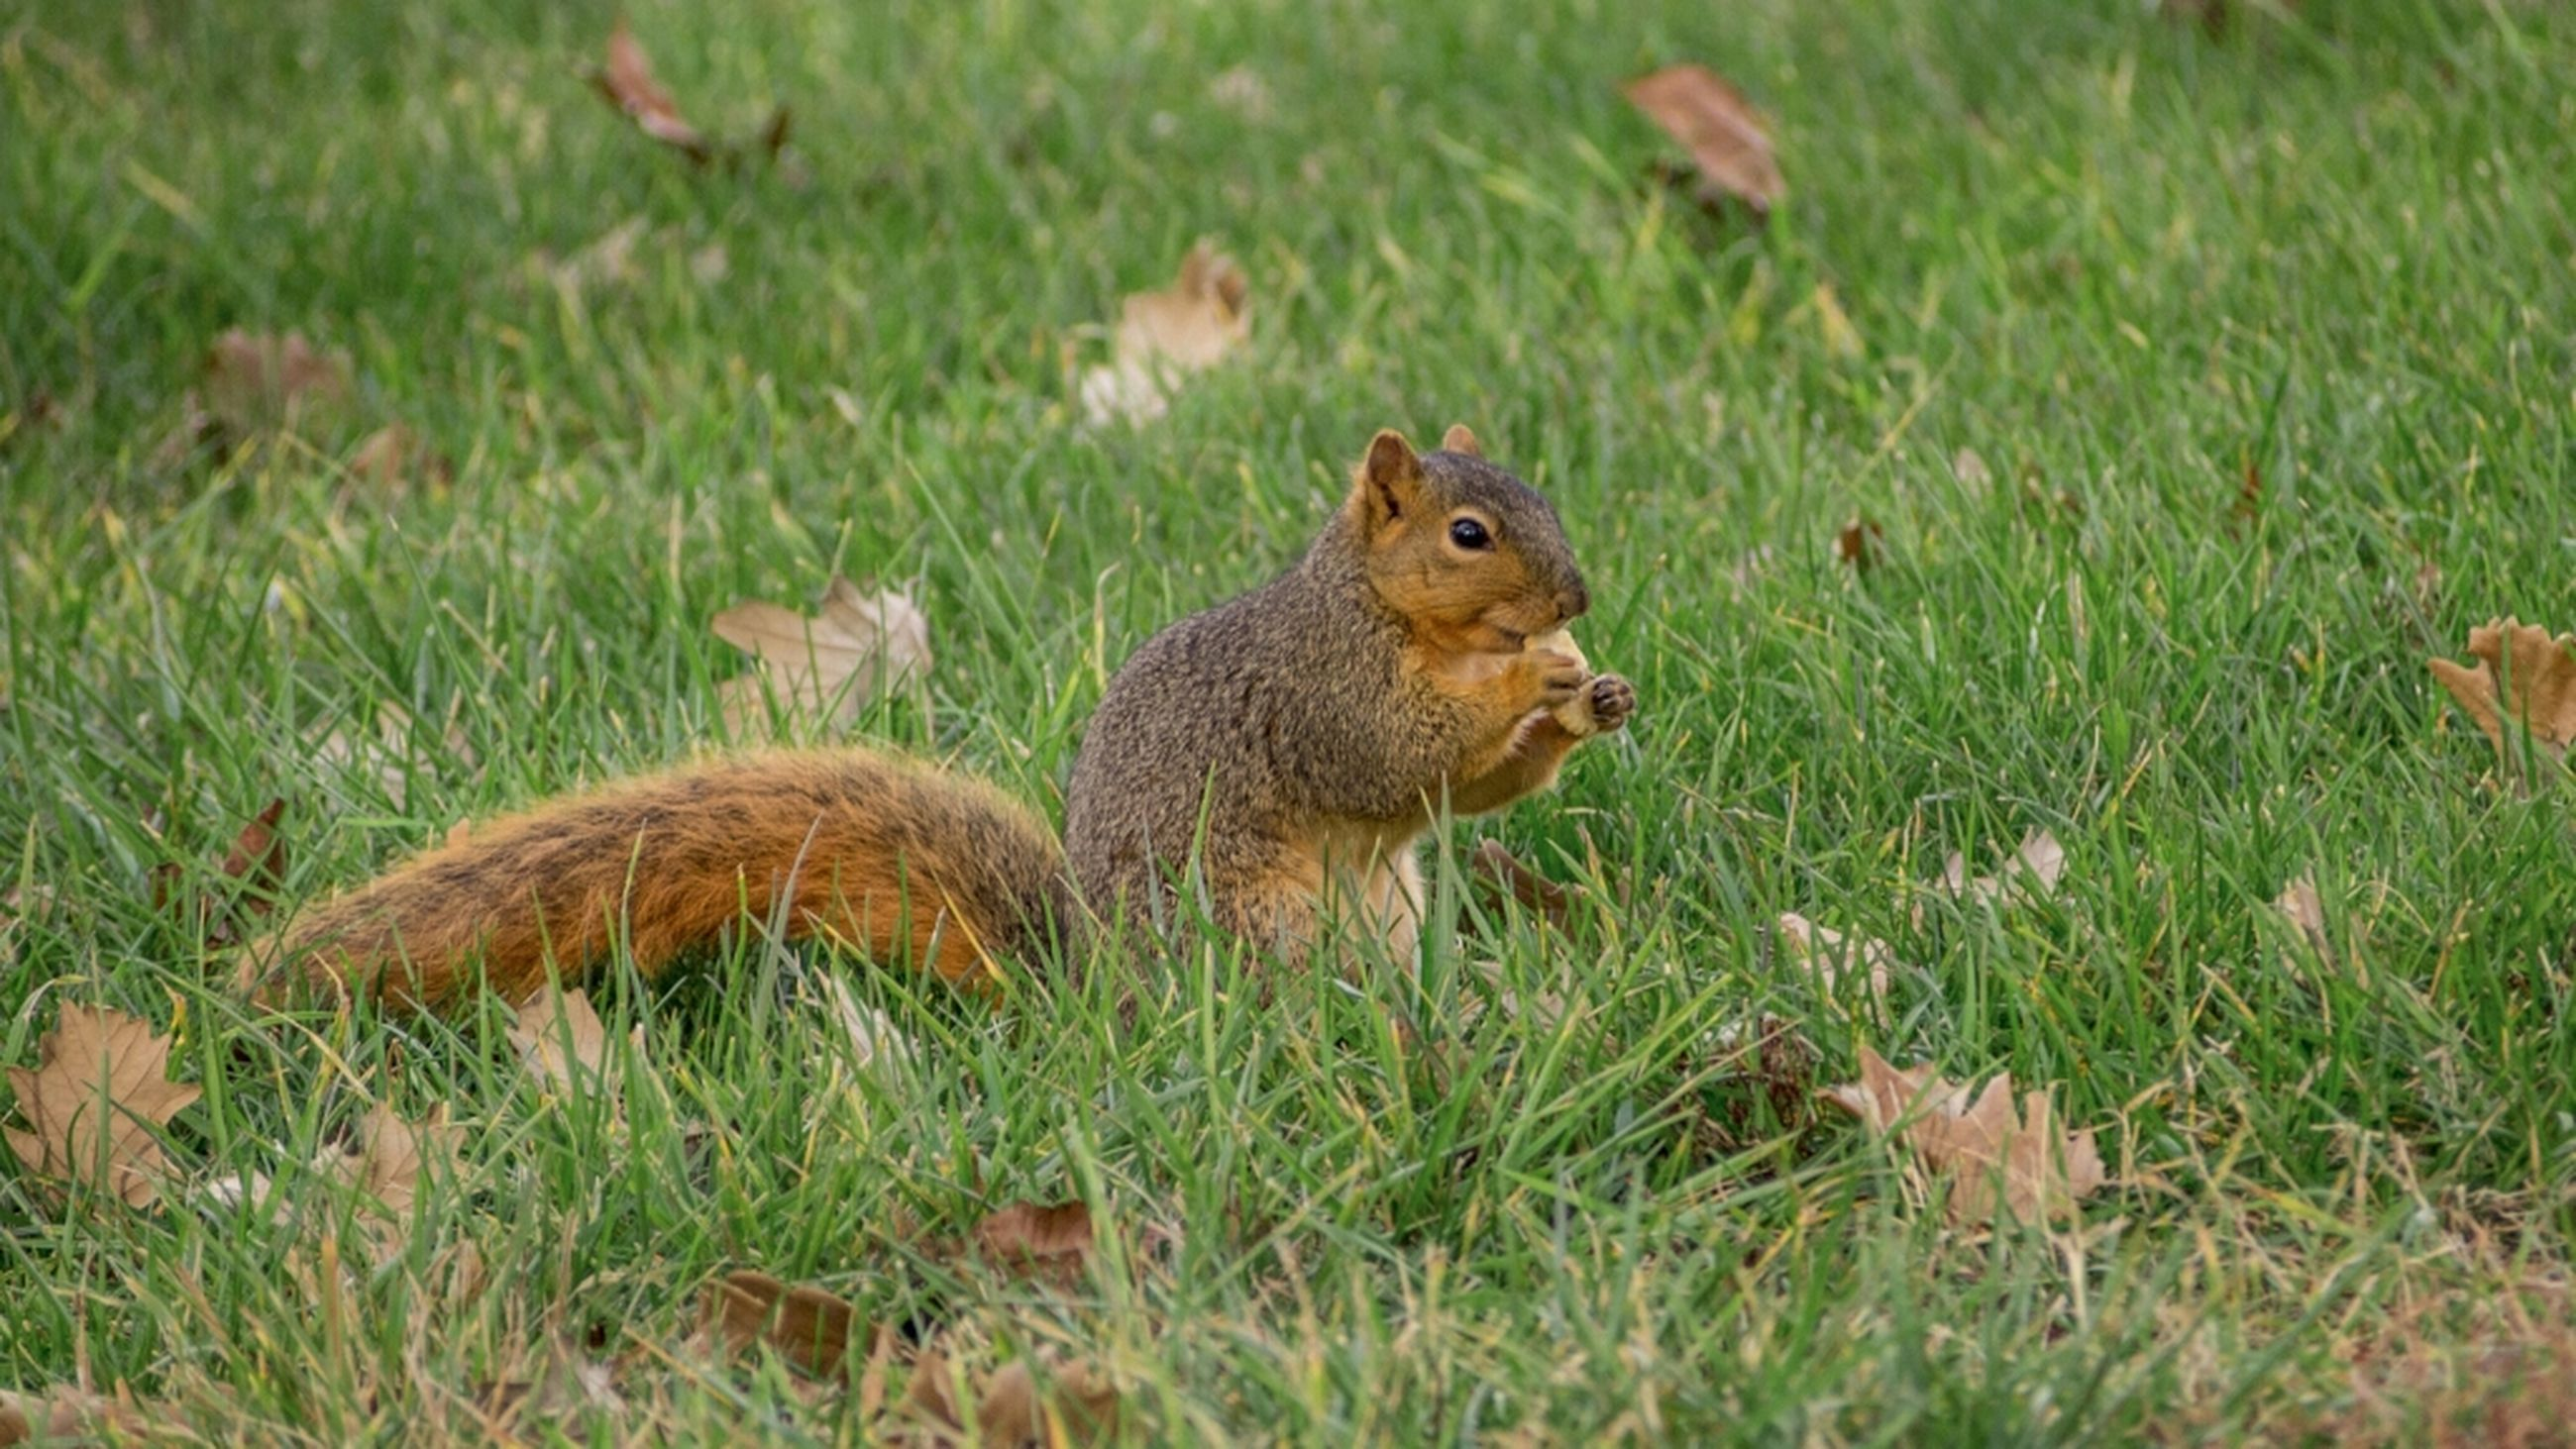 animal themes, grass, animals in the wild, wildlife, one animal, field, grassy, squirrel, green color, nature, mammal, growth, rodent, day, high angle view, outdoors, sitting, no people, full length, plant